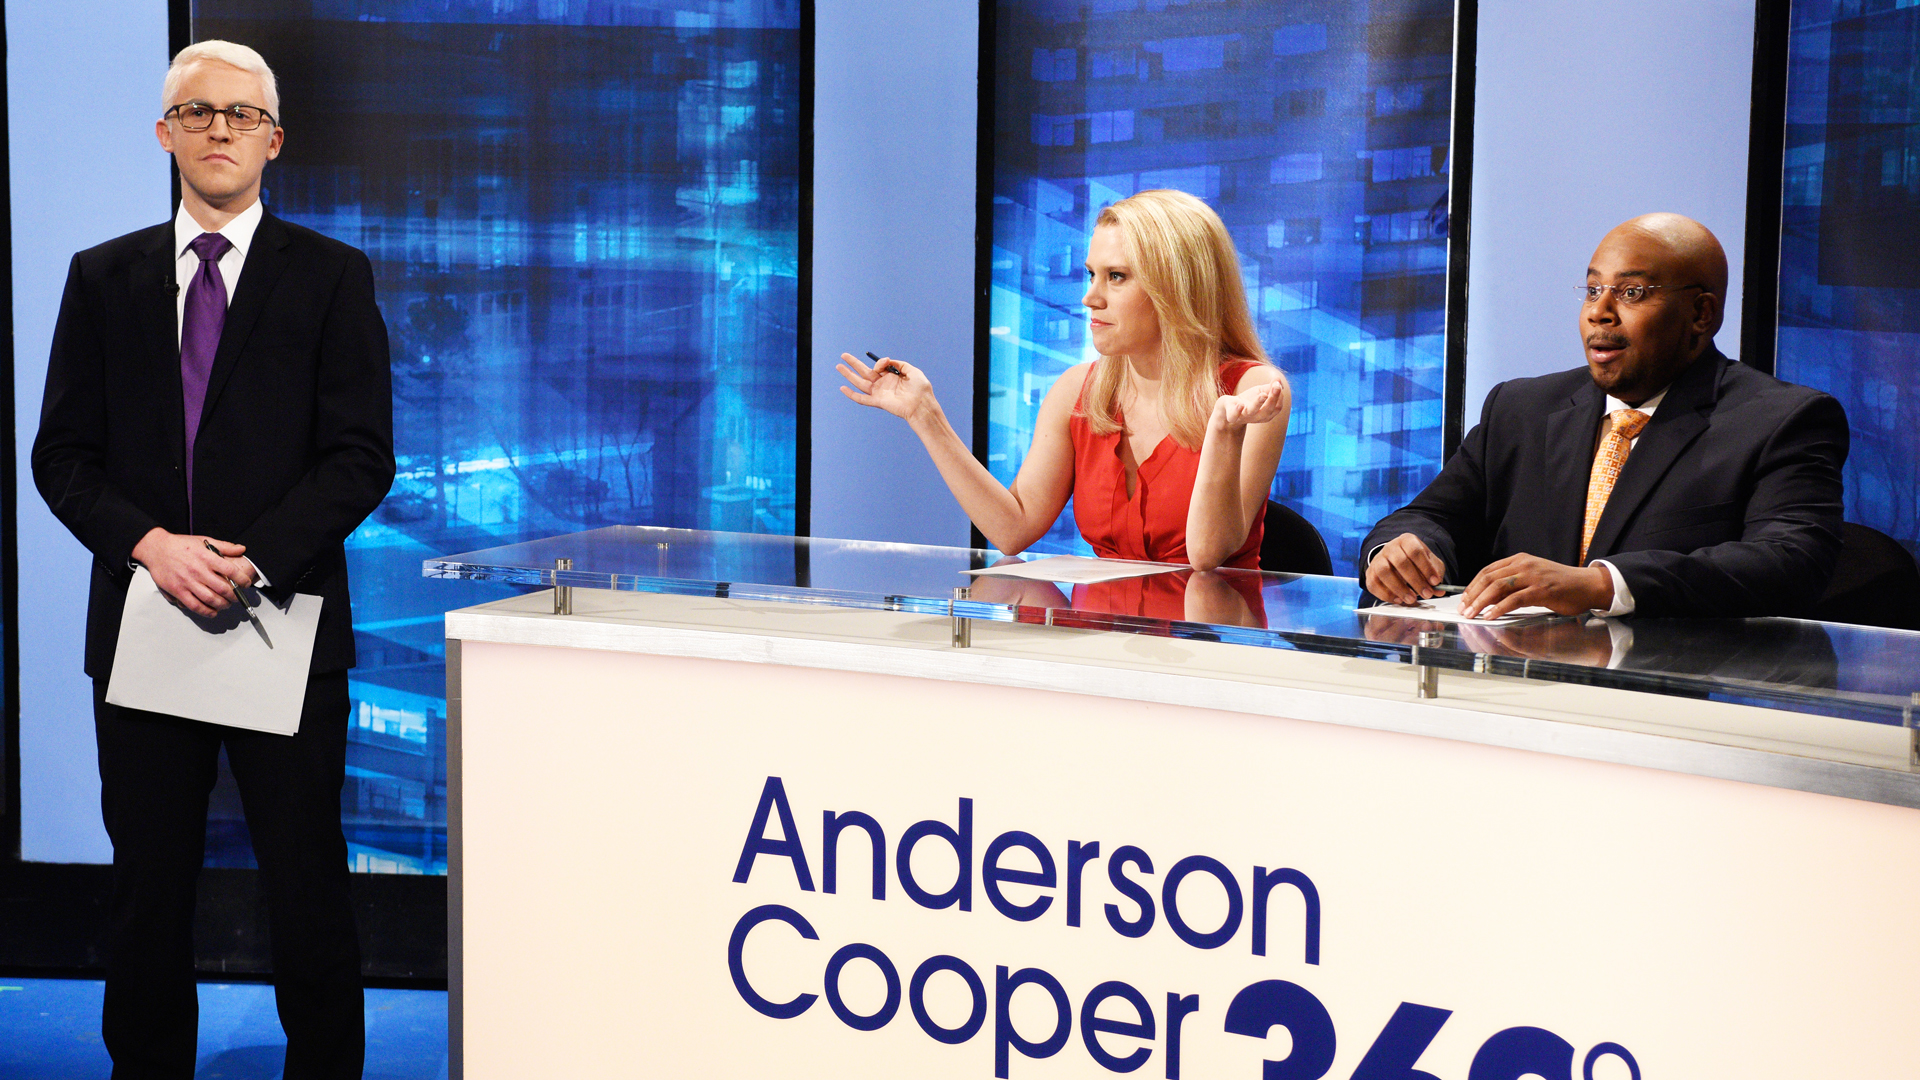 Watch Anderson Cooper 360 From Saturday Night Live - NBC.com